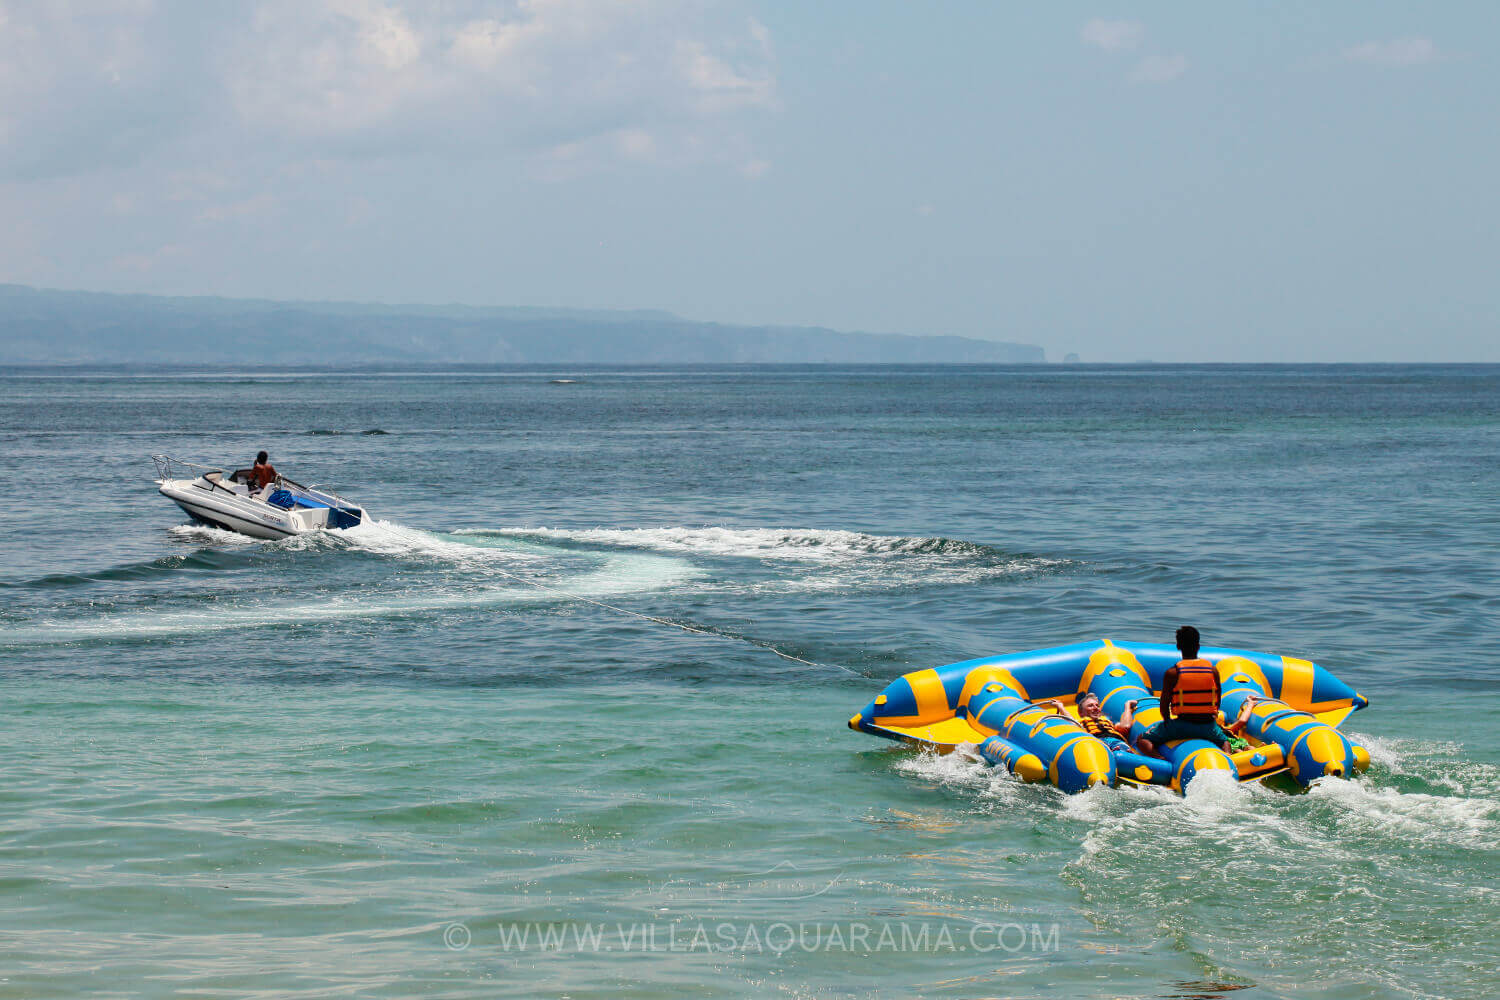 activities-flyfish-bali-family-watersport-boat-villas-aquarama-rent